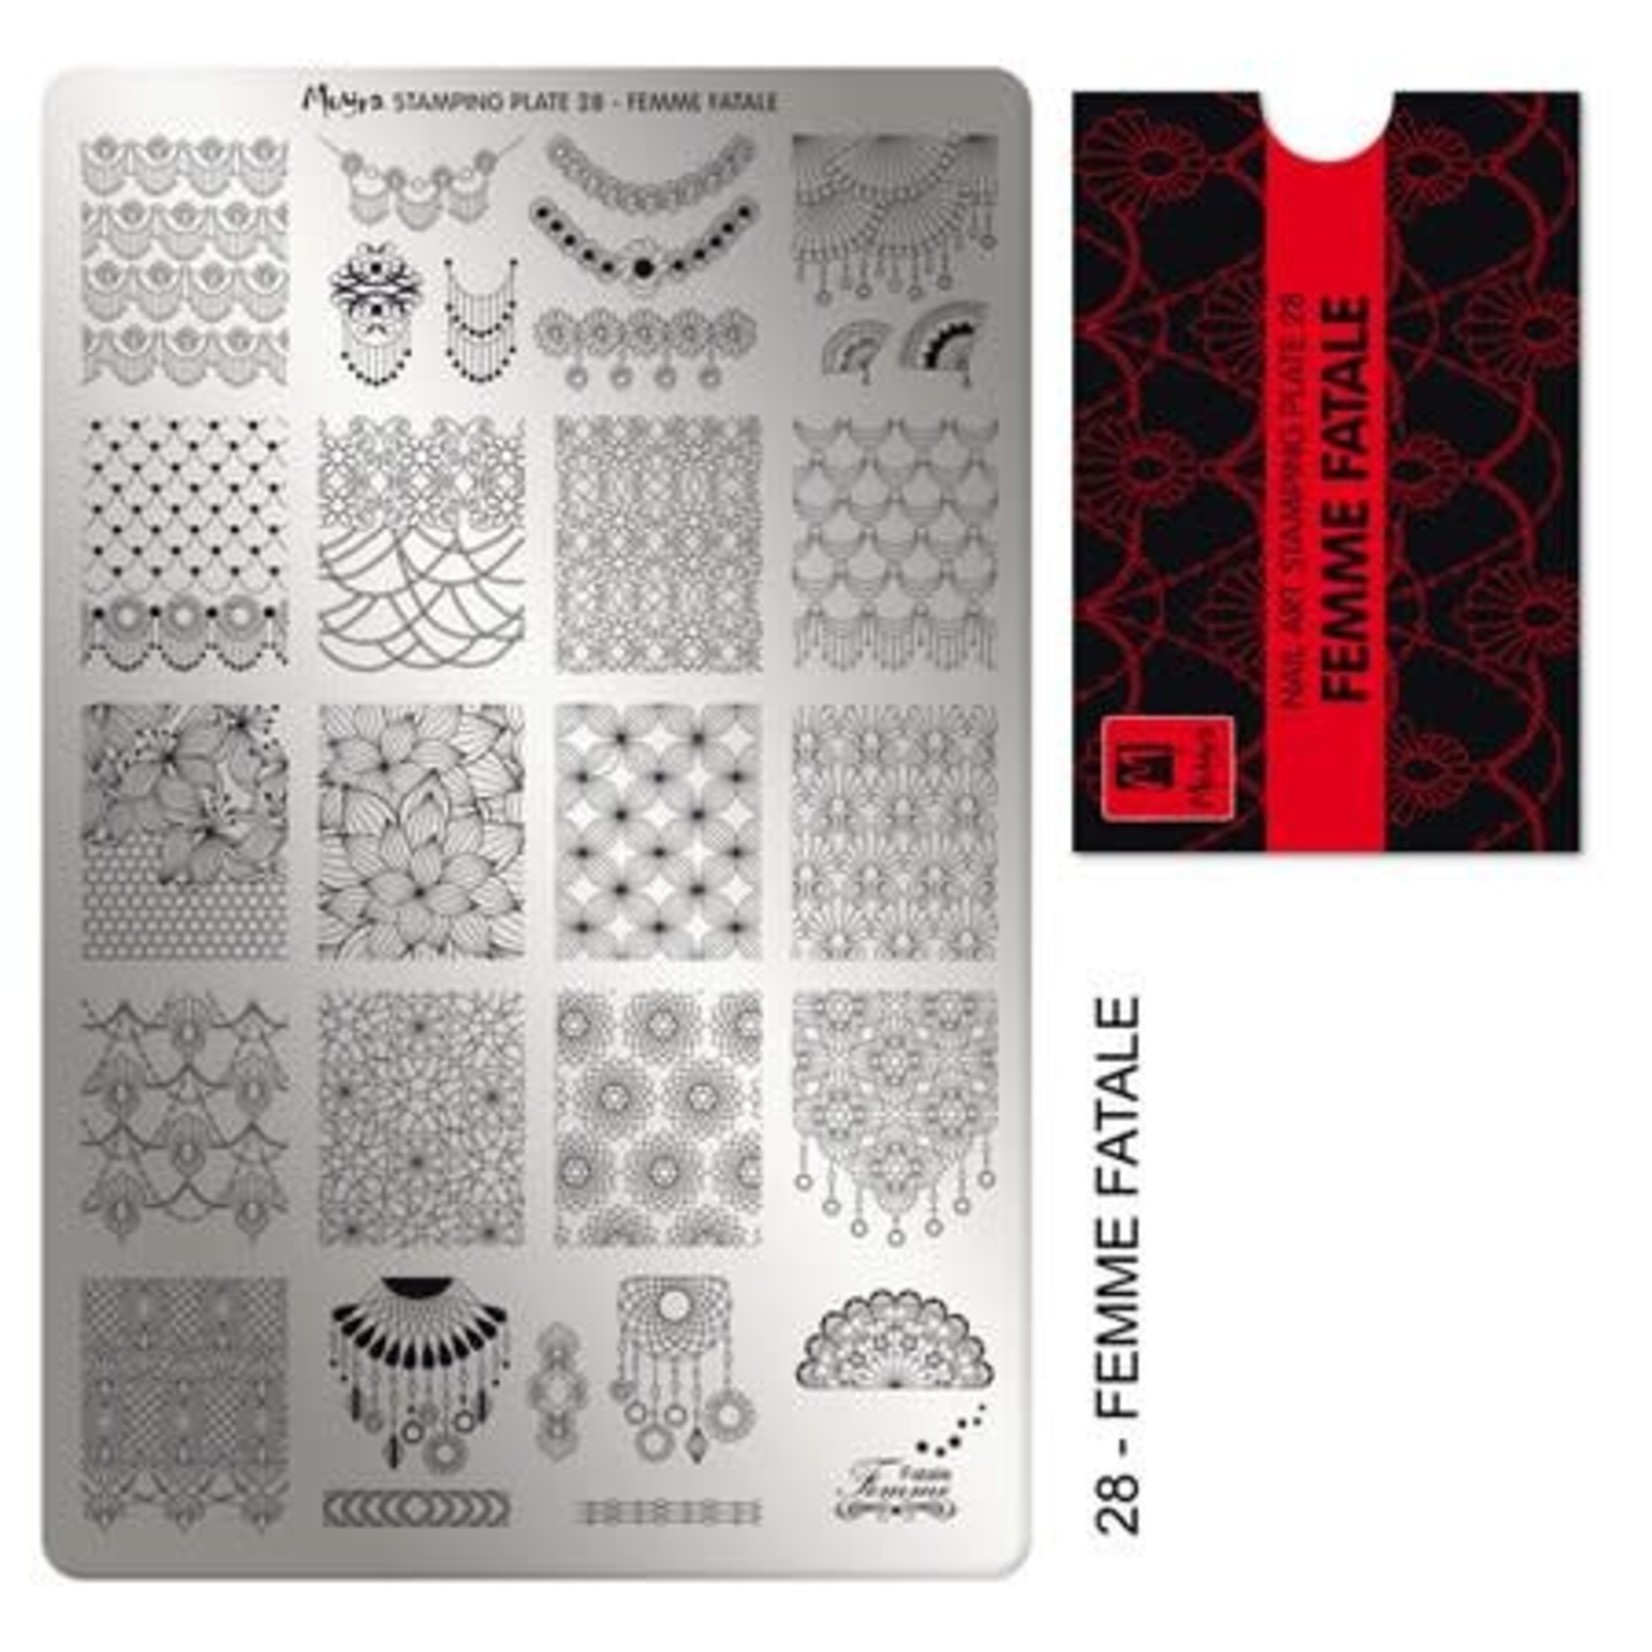 Moyra Moyra Stamping plate 28 Femme Fatale